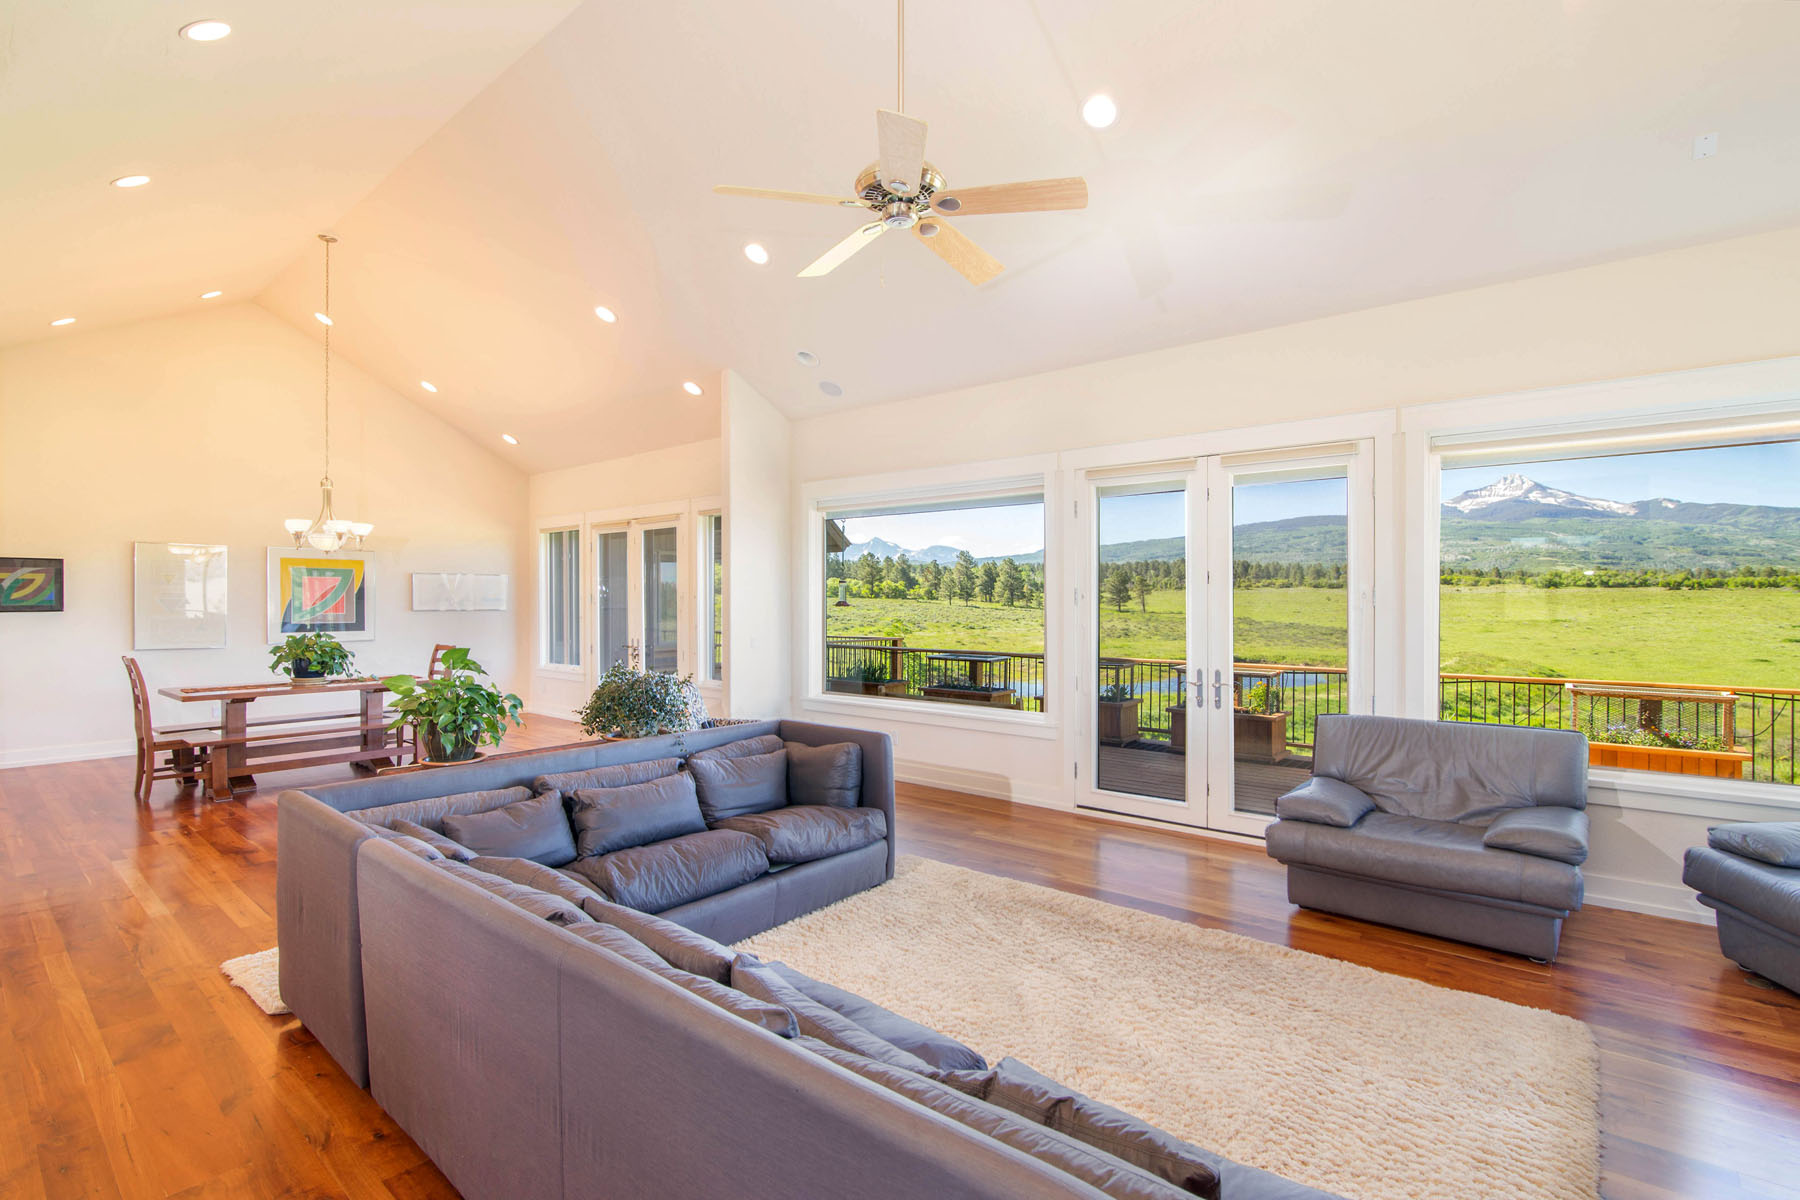 Single Family Home for Sale at 10291 County Road 44ZS Norwood, Colorado, 81423 United States